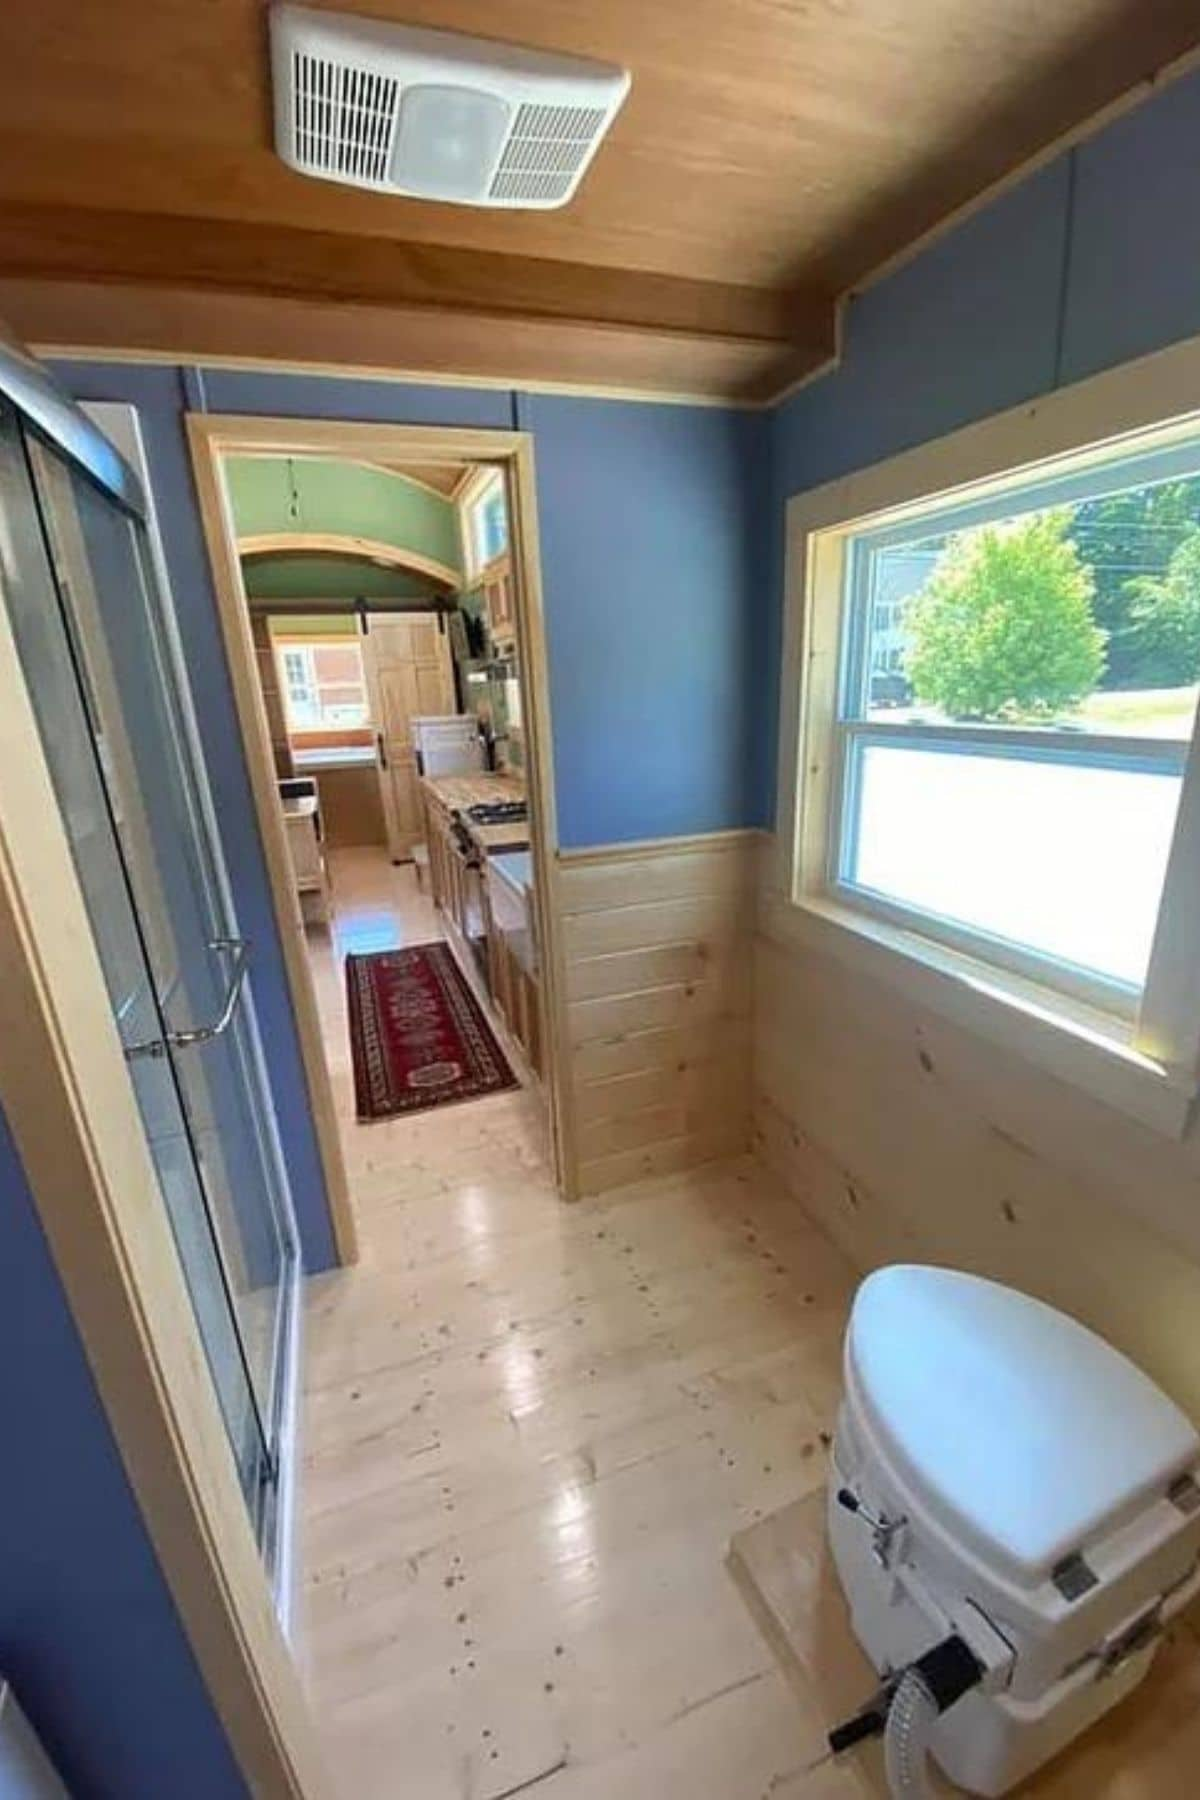 View out the bathroom door toward the living space